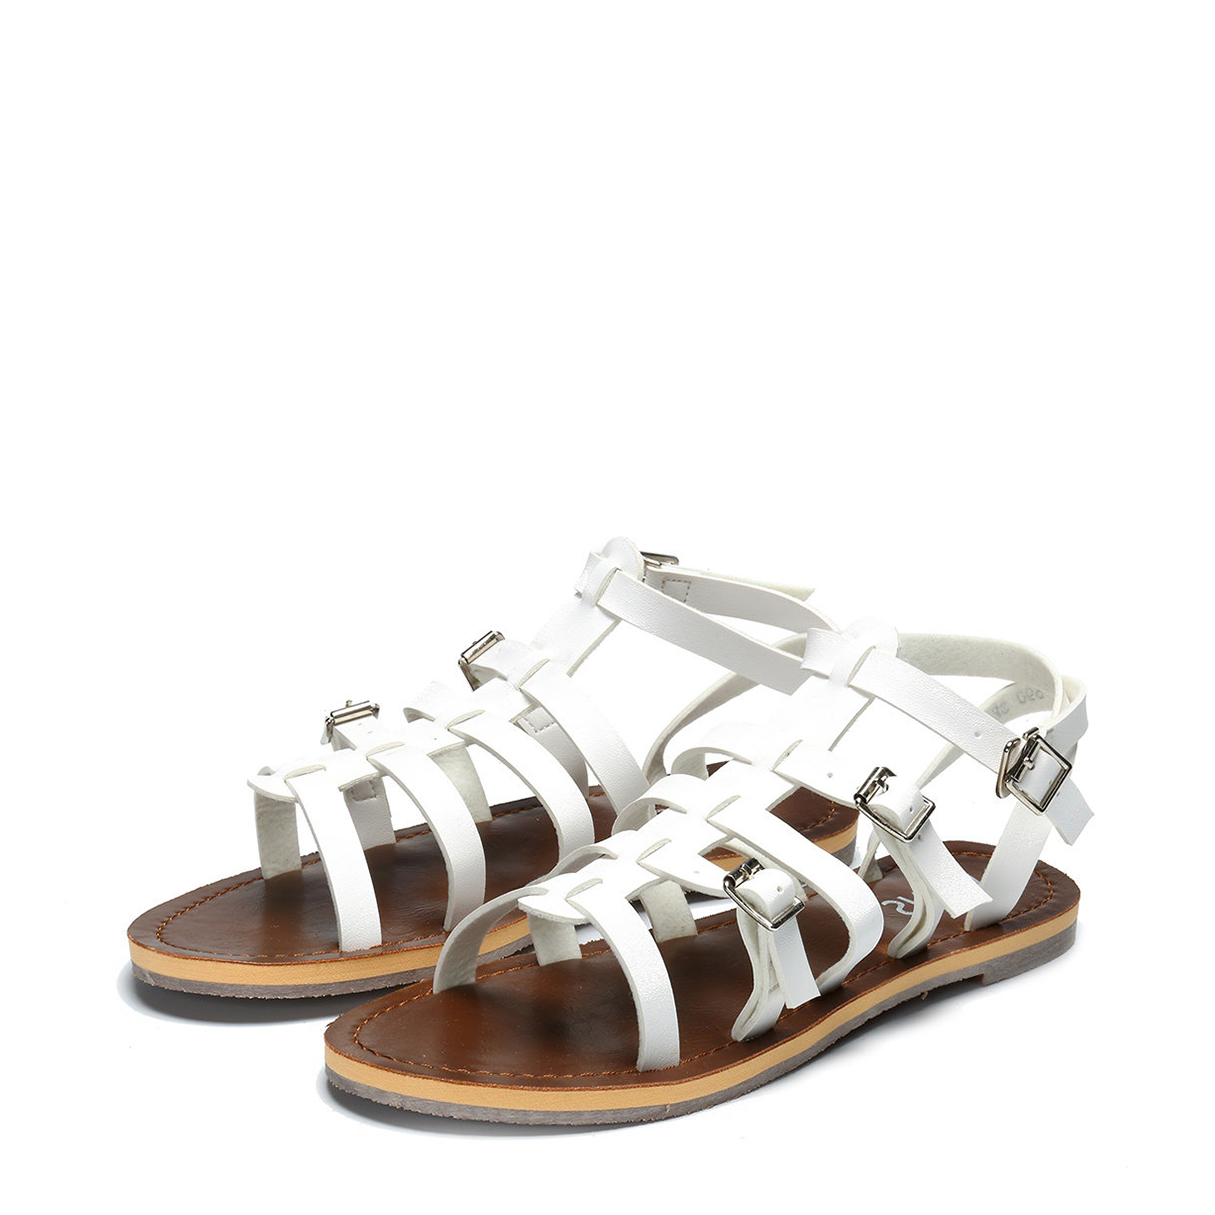 8737c6a43ebbe White Strappy Buckle Design Flat Sandals - US 22.95 -YOINS